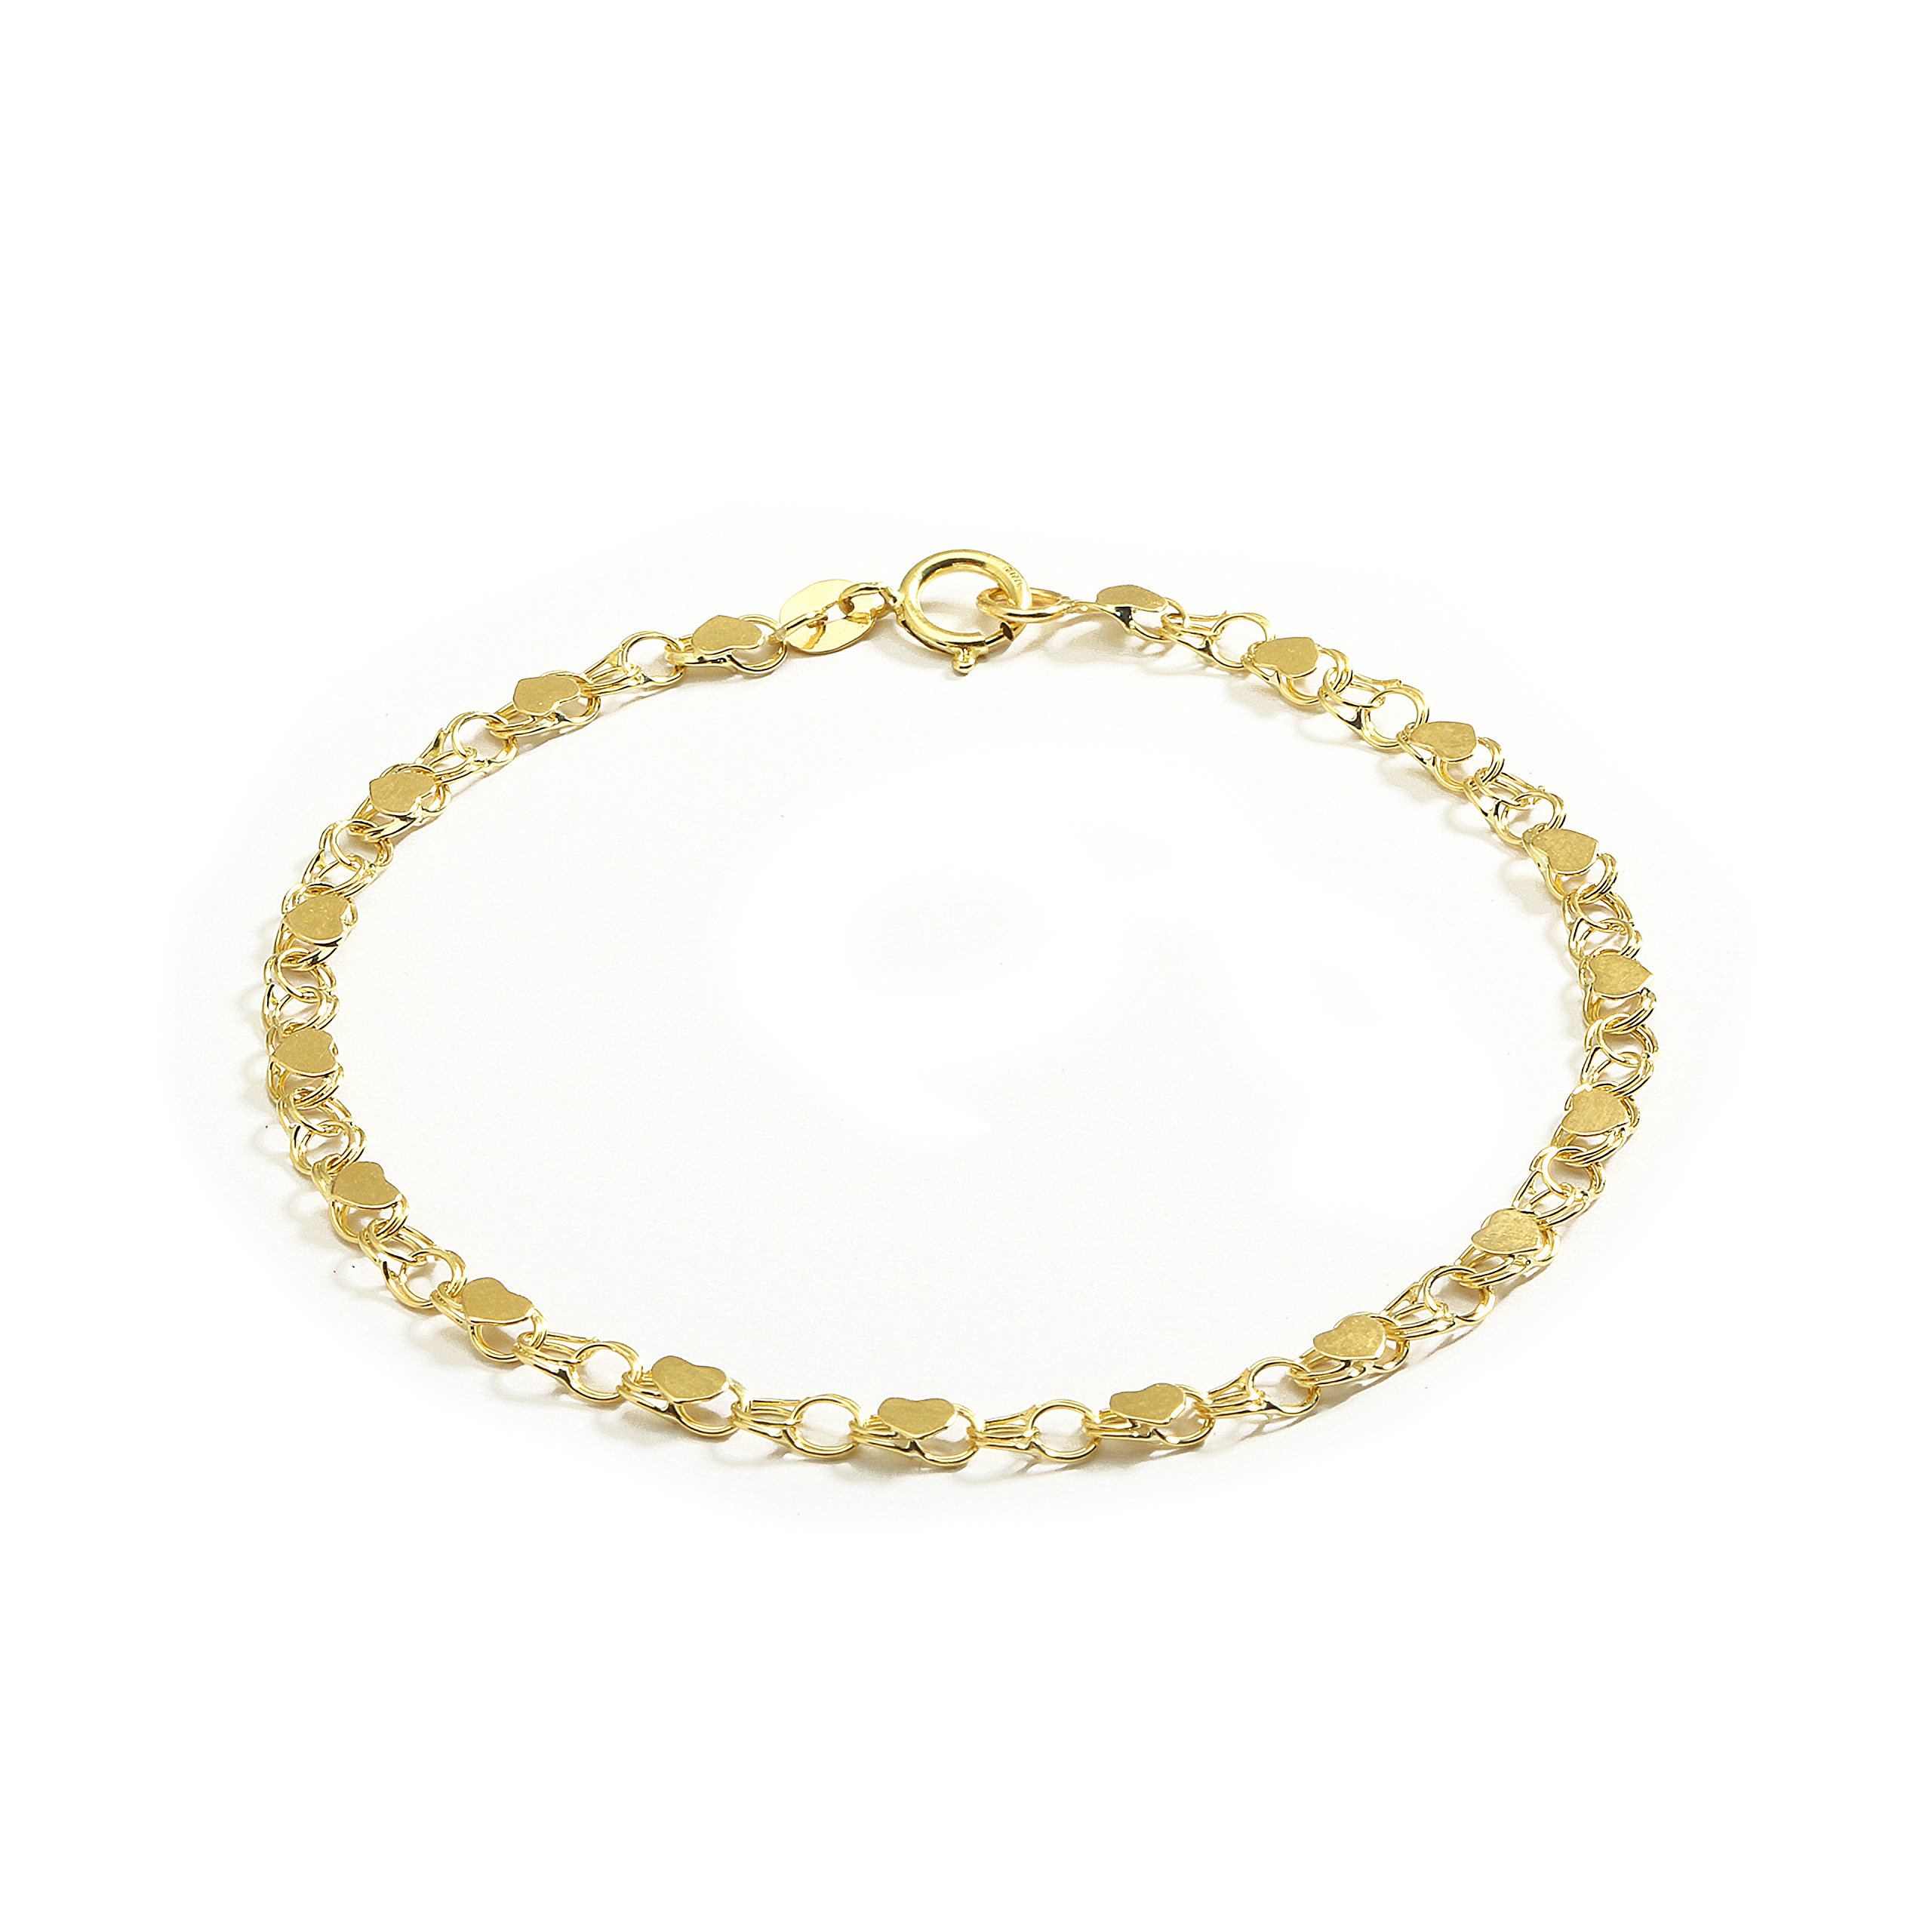 10 Inch 10k Yellow Gold Heart Bracelet and Anklet for Women and Girls, (0.14'')